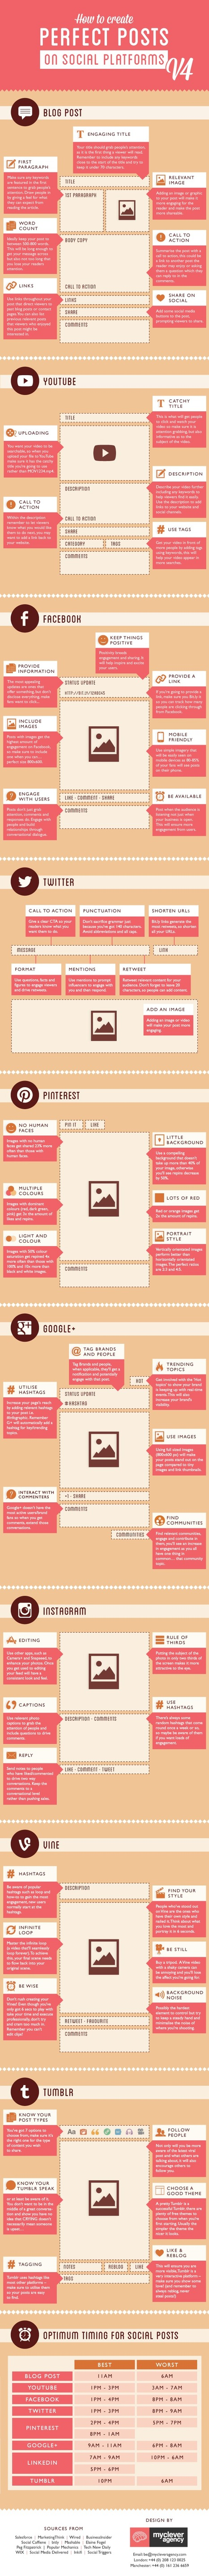 The Art of Creating Perfect Social Media Posts - infographic | Communication design | Scoop.it